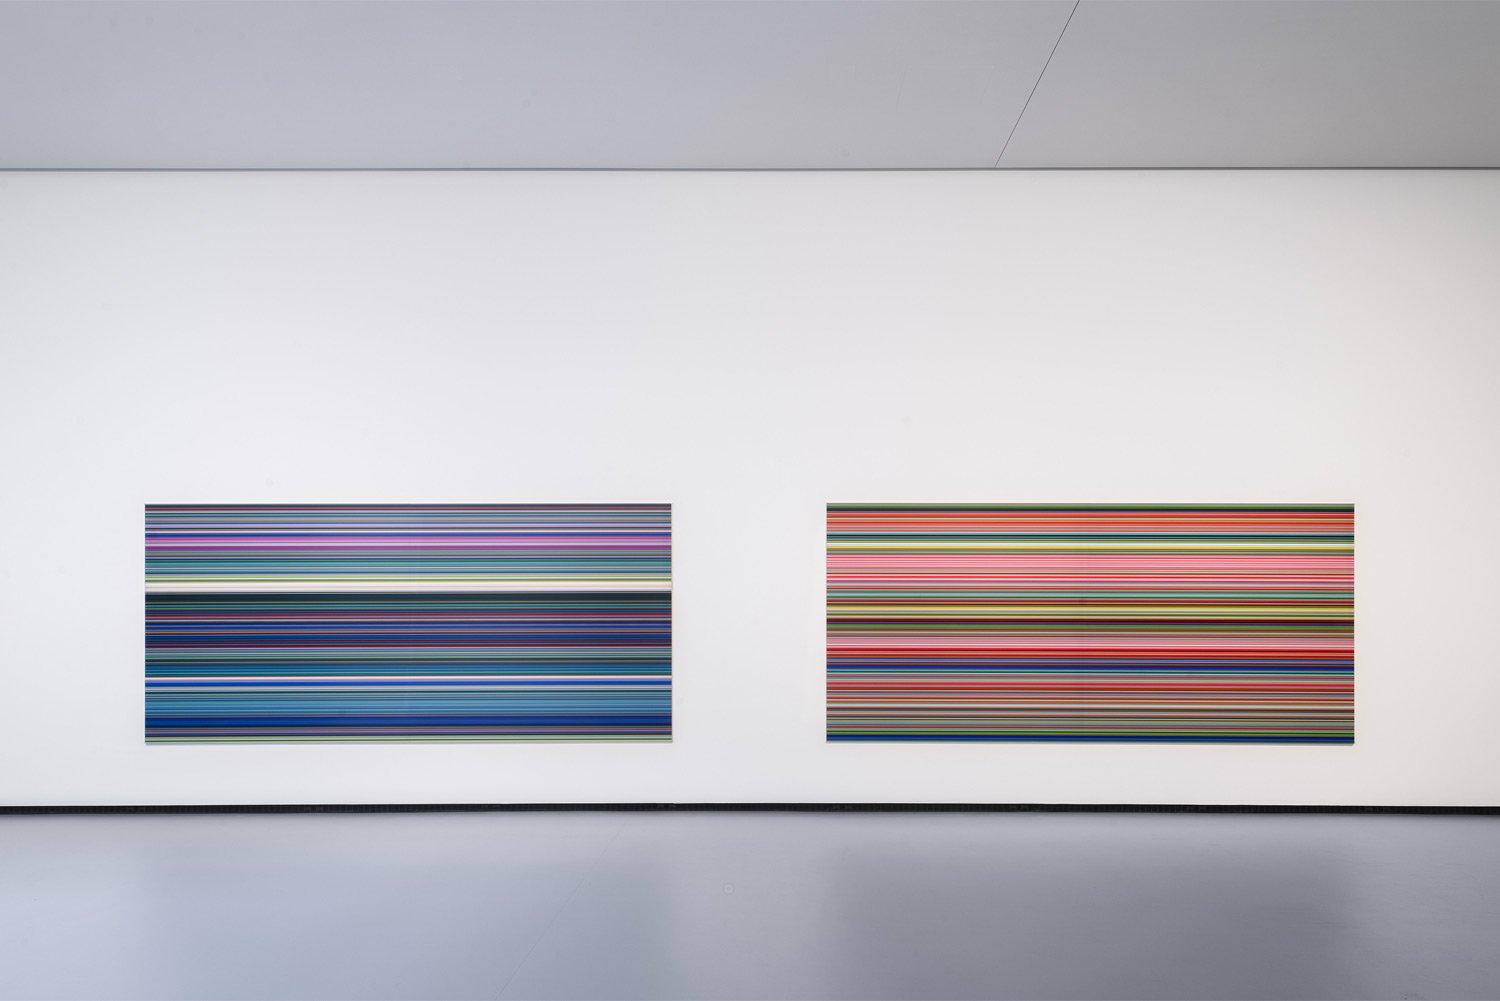 Gerhard-Richter—Strip-(921-5)-puis-Strip-(921-2)-©-Fondation-Louis-Vuitton-Martin-Argyroglo